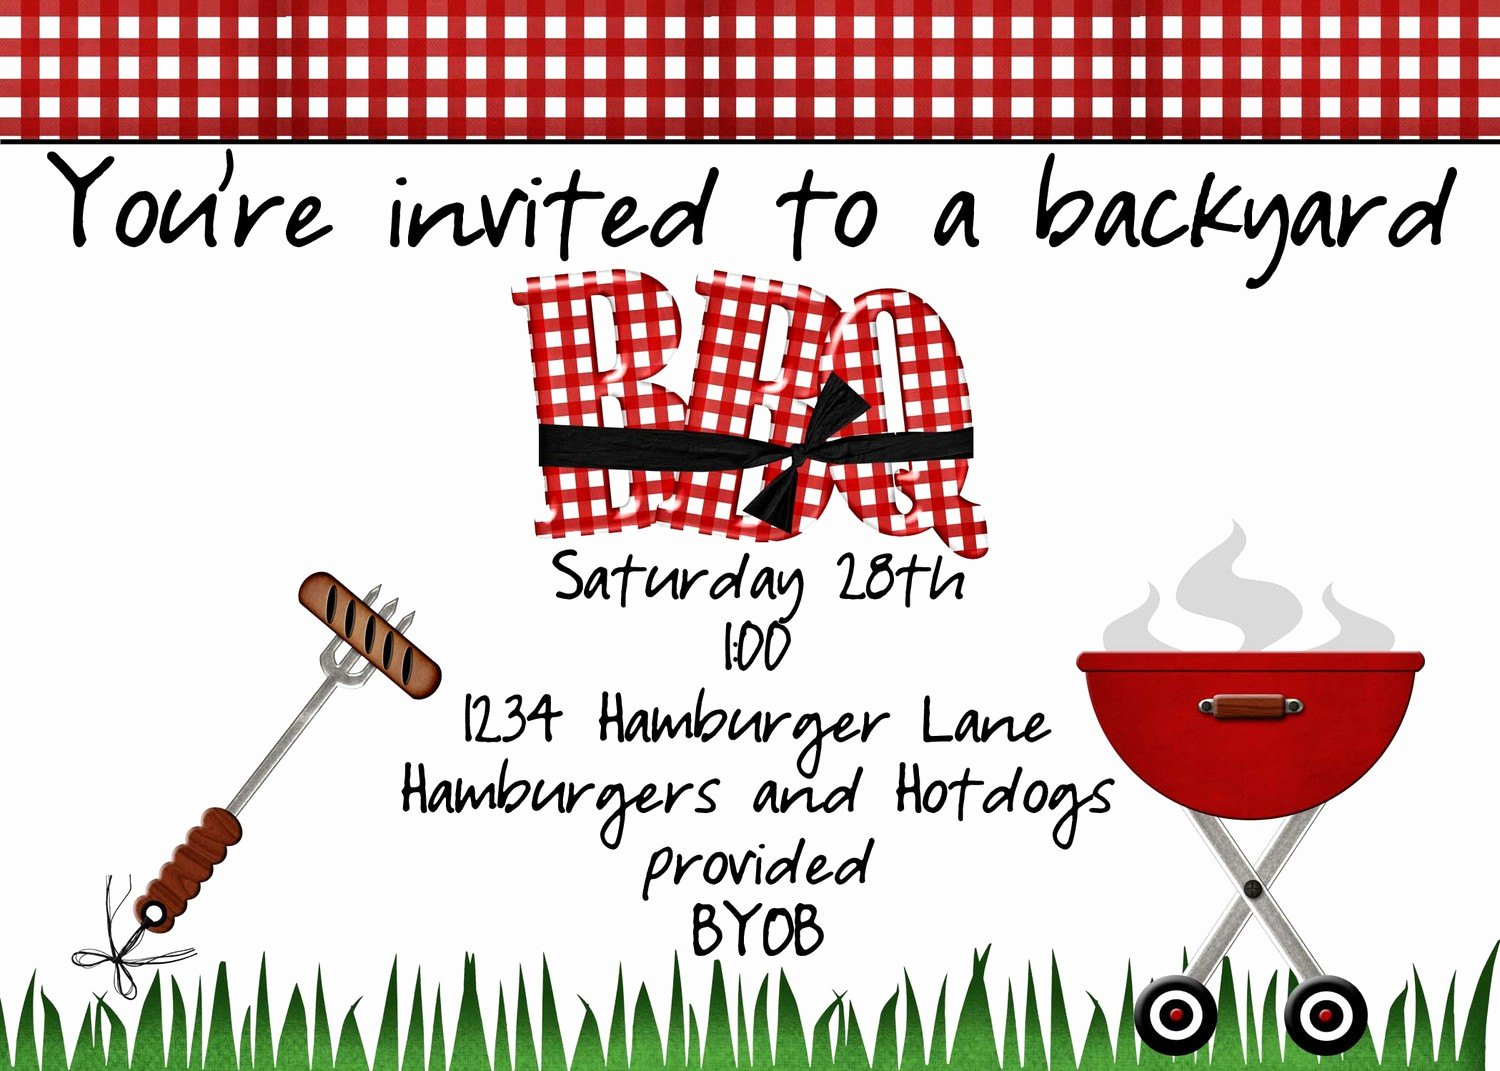 Barbecue Invitation Free Template Best Of Backyard Bbq Invitation by Jaebirddesign On Etsy